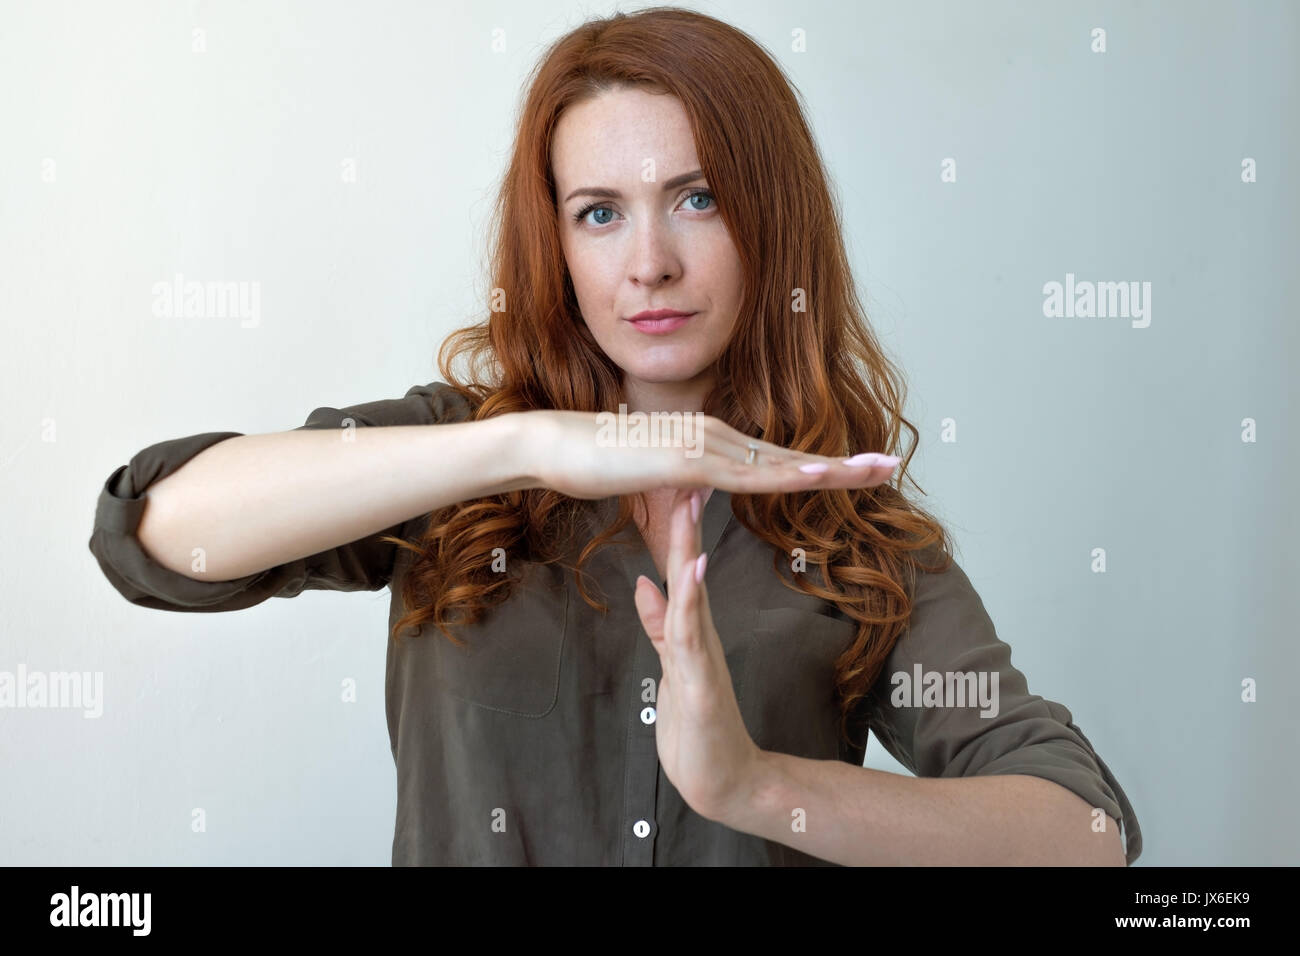 Young woman showing time out hand gesture, frustrated screaming to stop isolated on grey wall background. - Stock Image